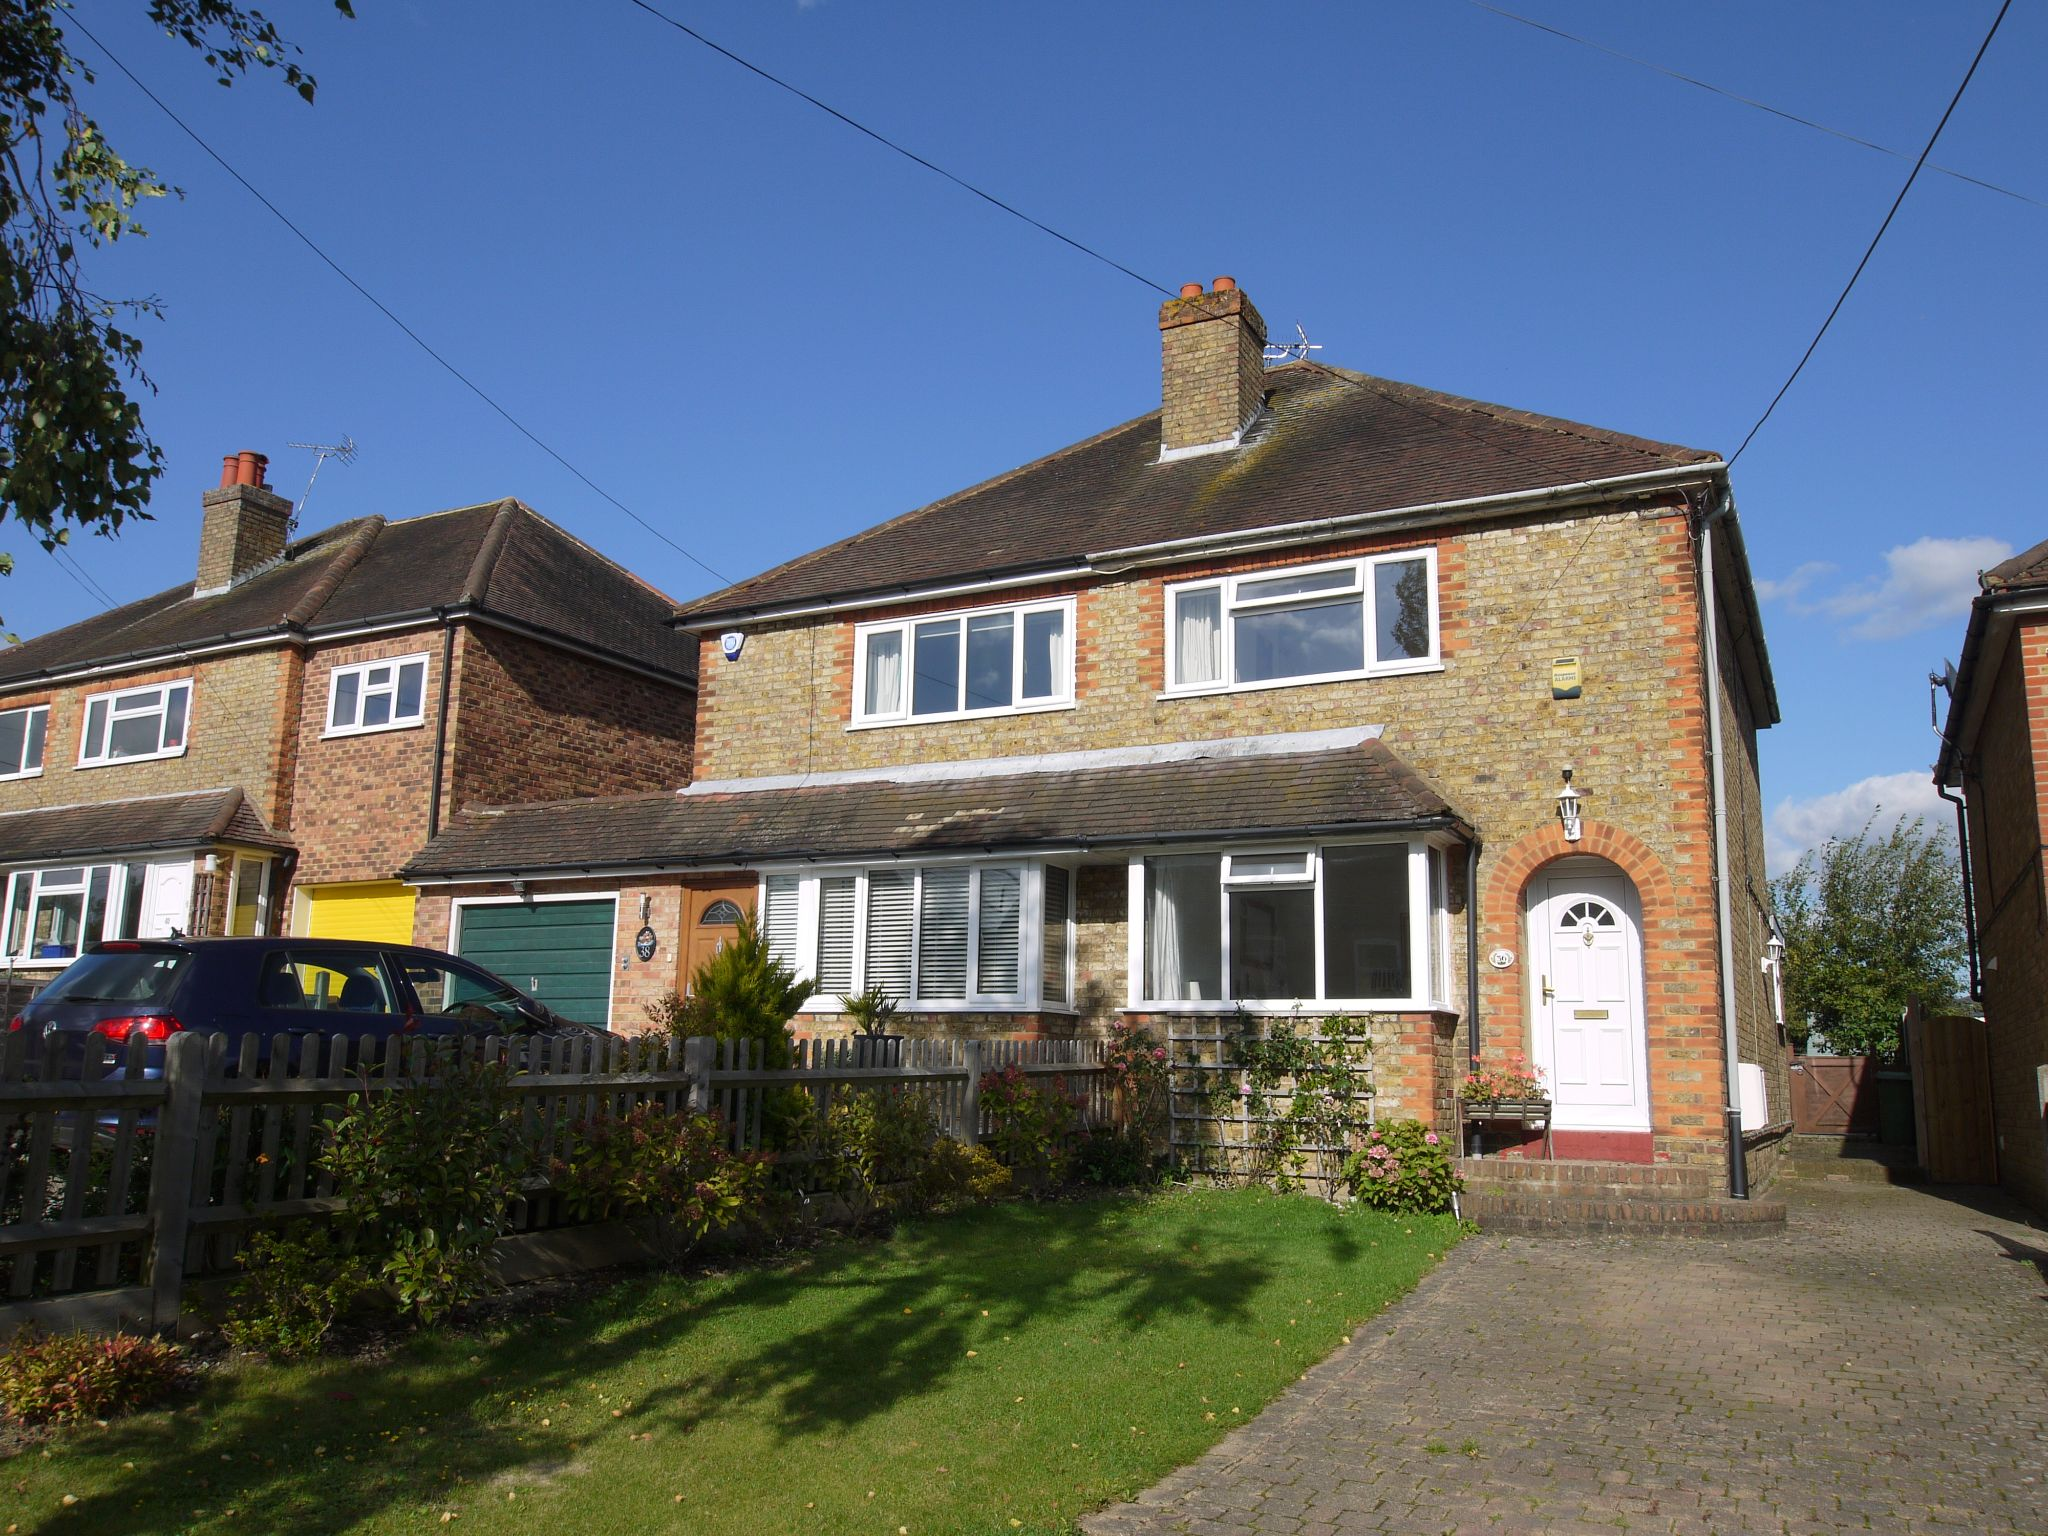 2 bedroom semi-detached house For Sale in Sevenoaks - Photograph 1